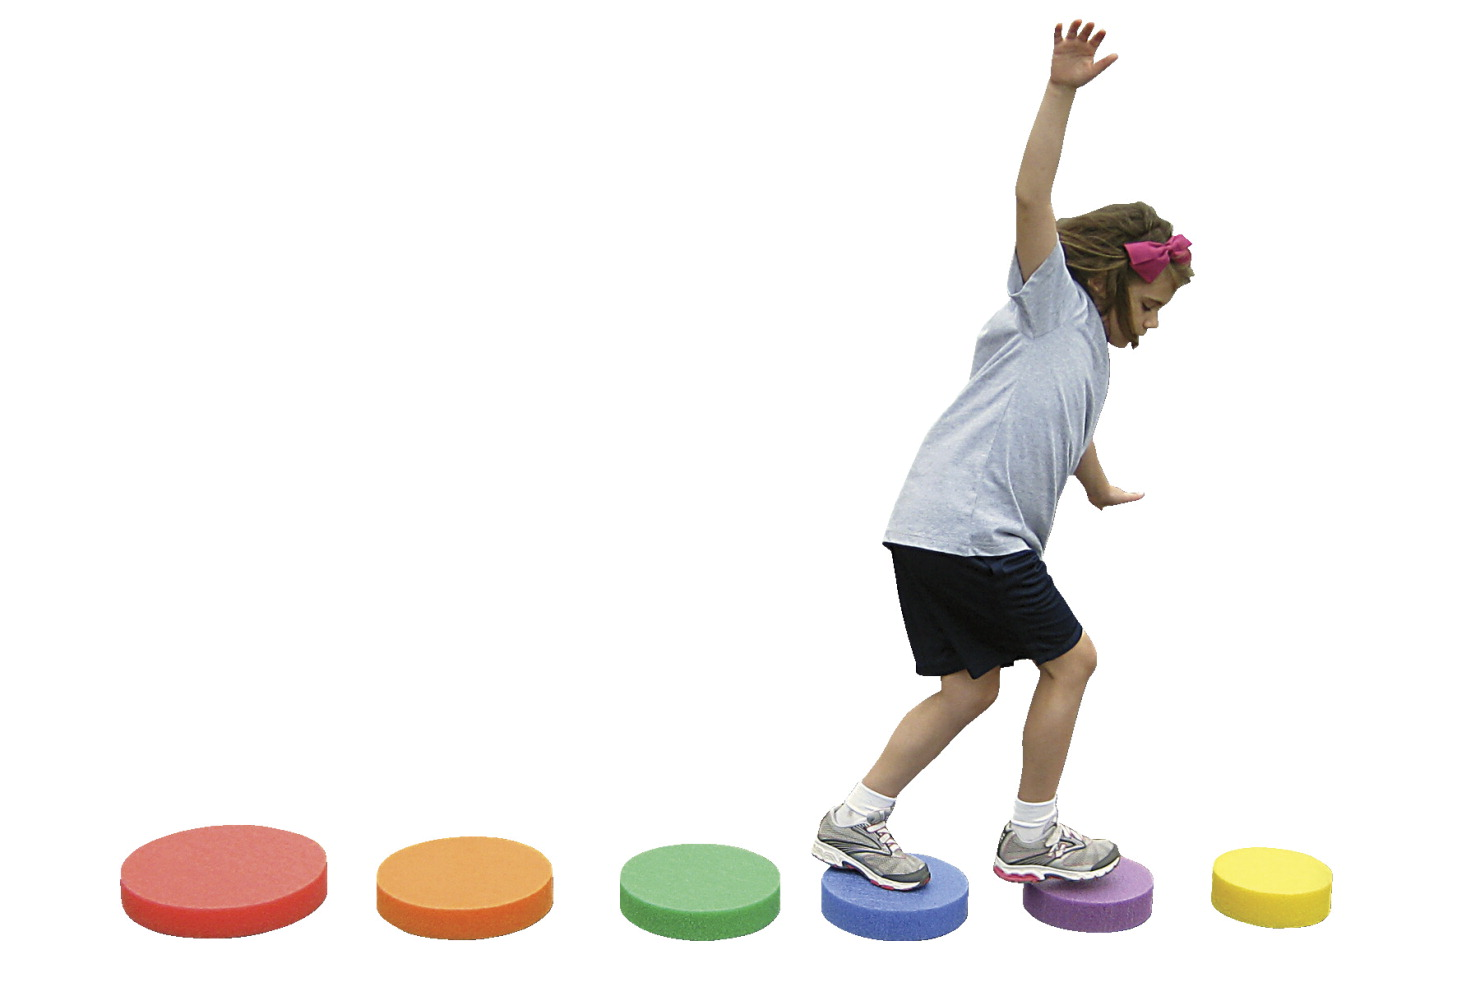 Pull-Buoy SkillSpots Challenge Set, 14 x 12 x 2-1/2 Inches, 6 Pieces